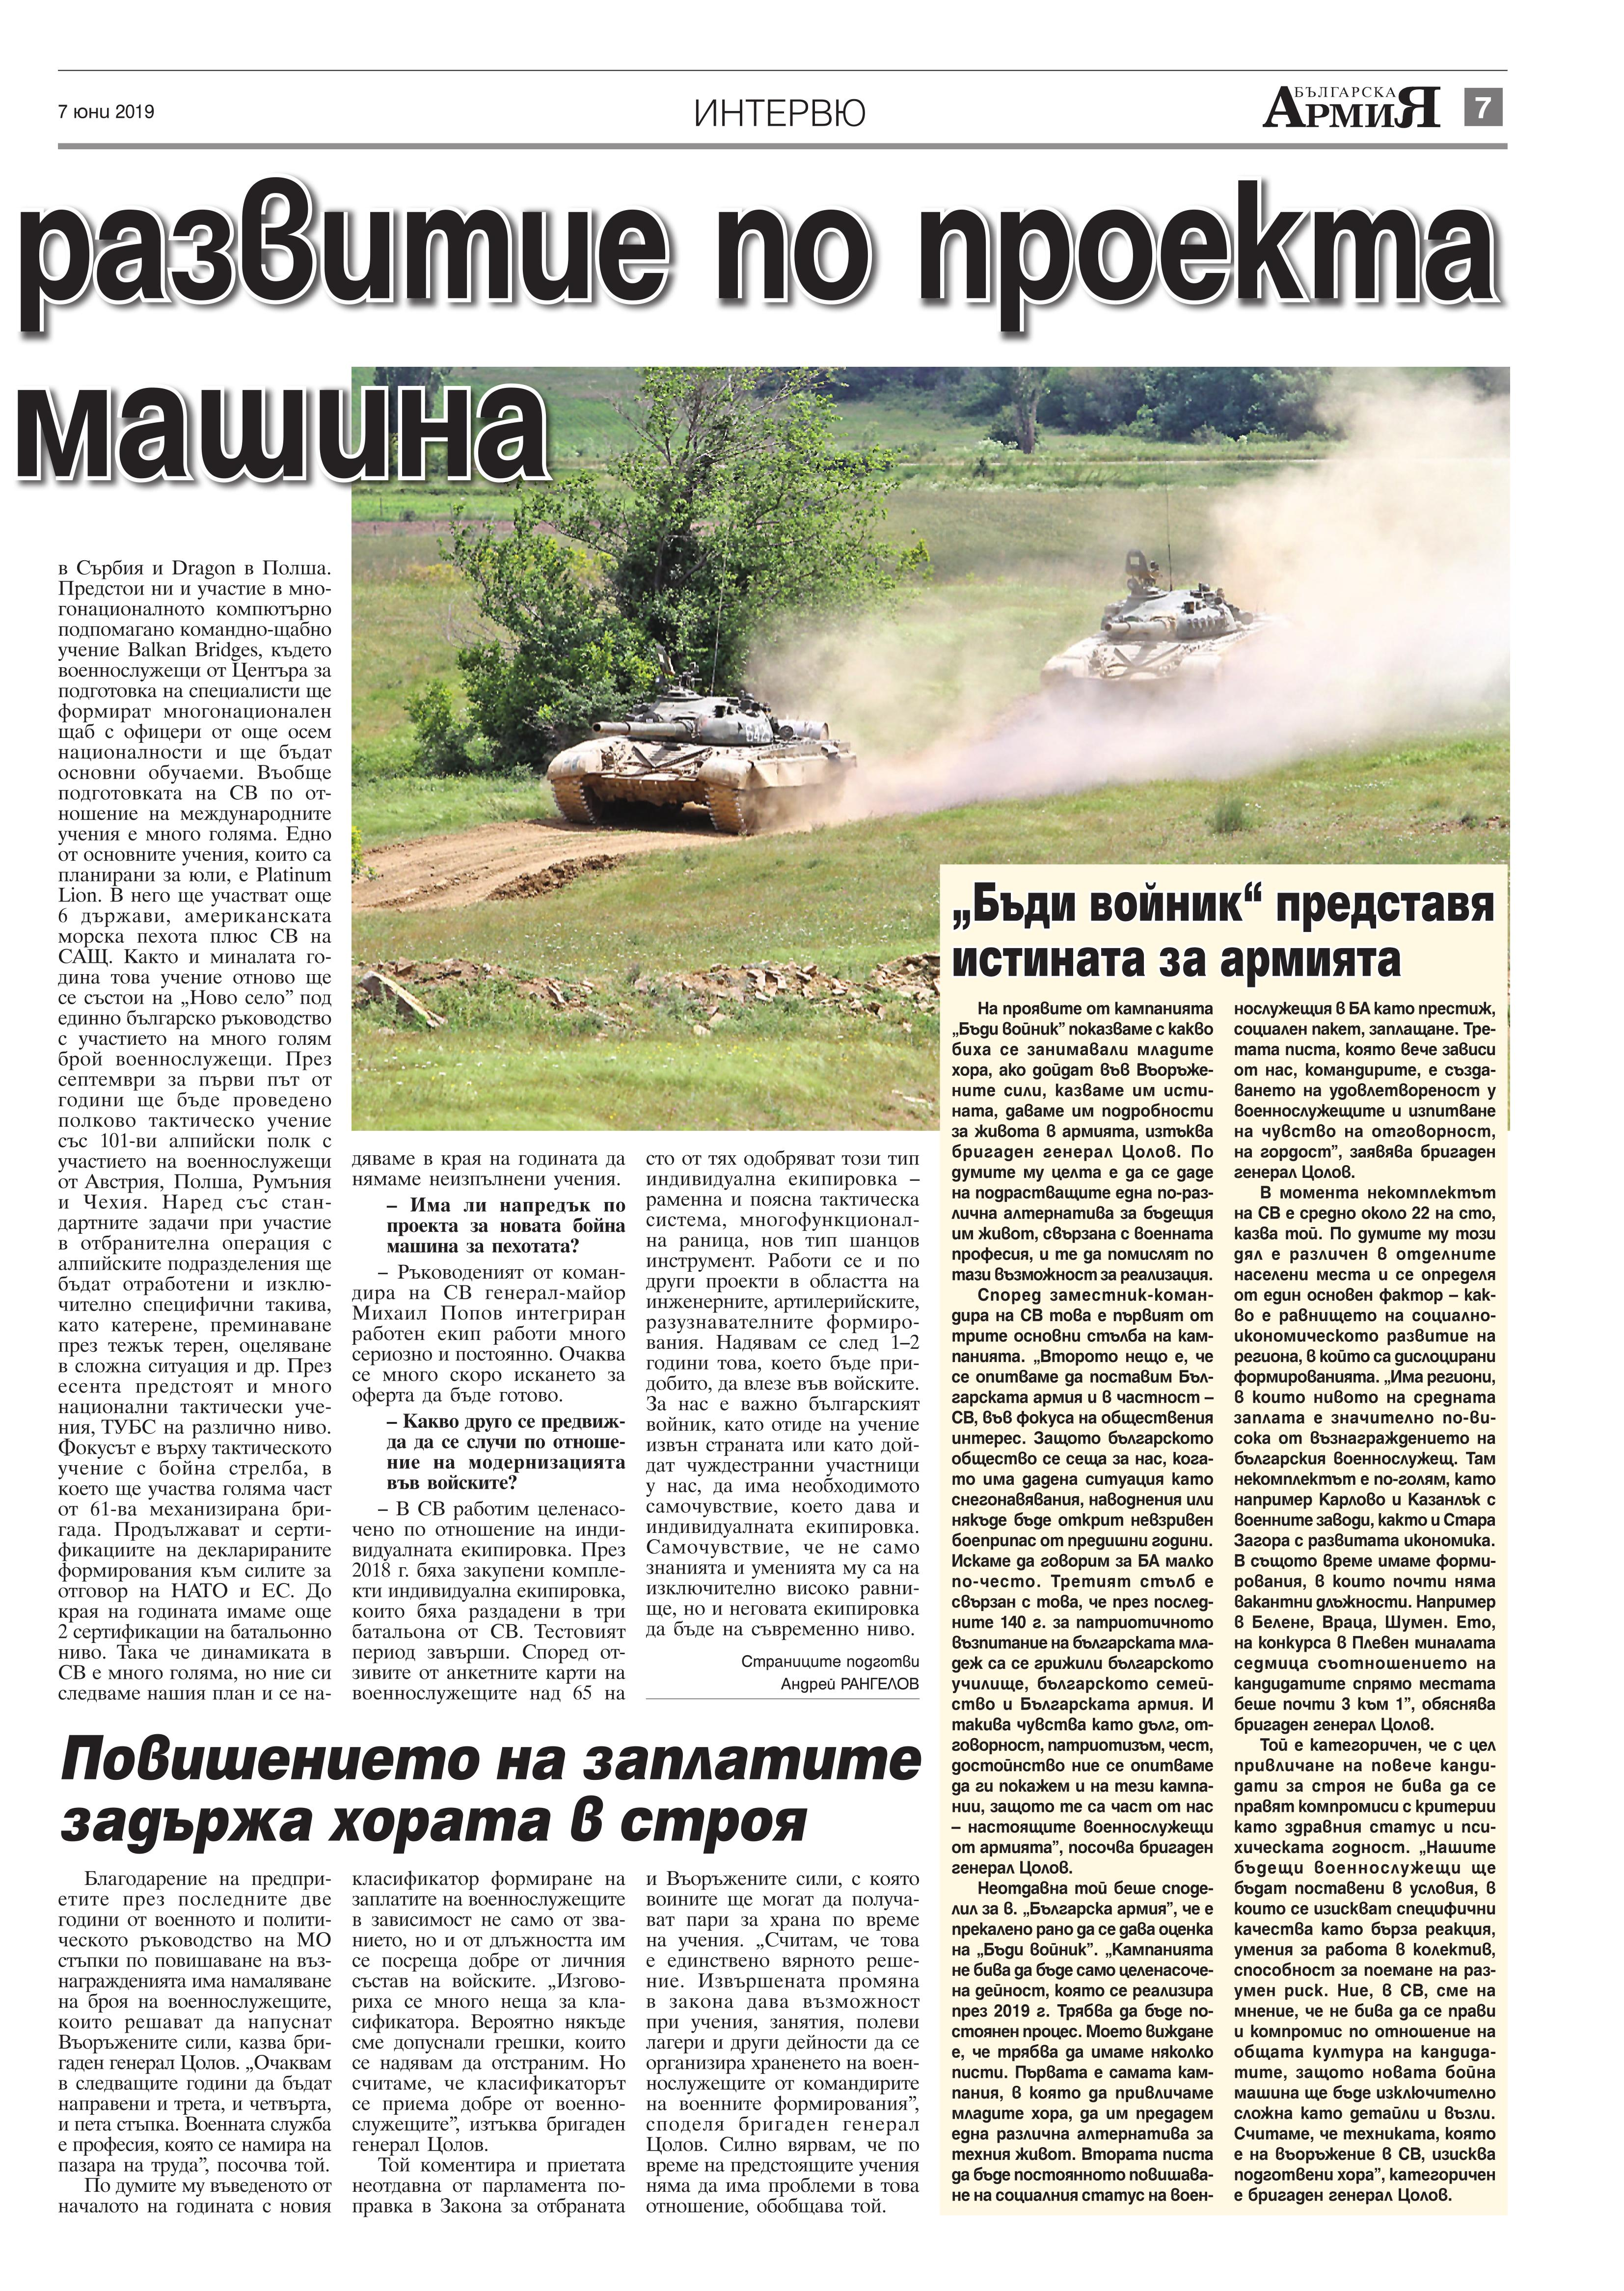 https://www.armymedia.bg/wp-content/uploads/2015/06/07.page1_-95.jpg